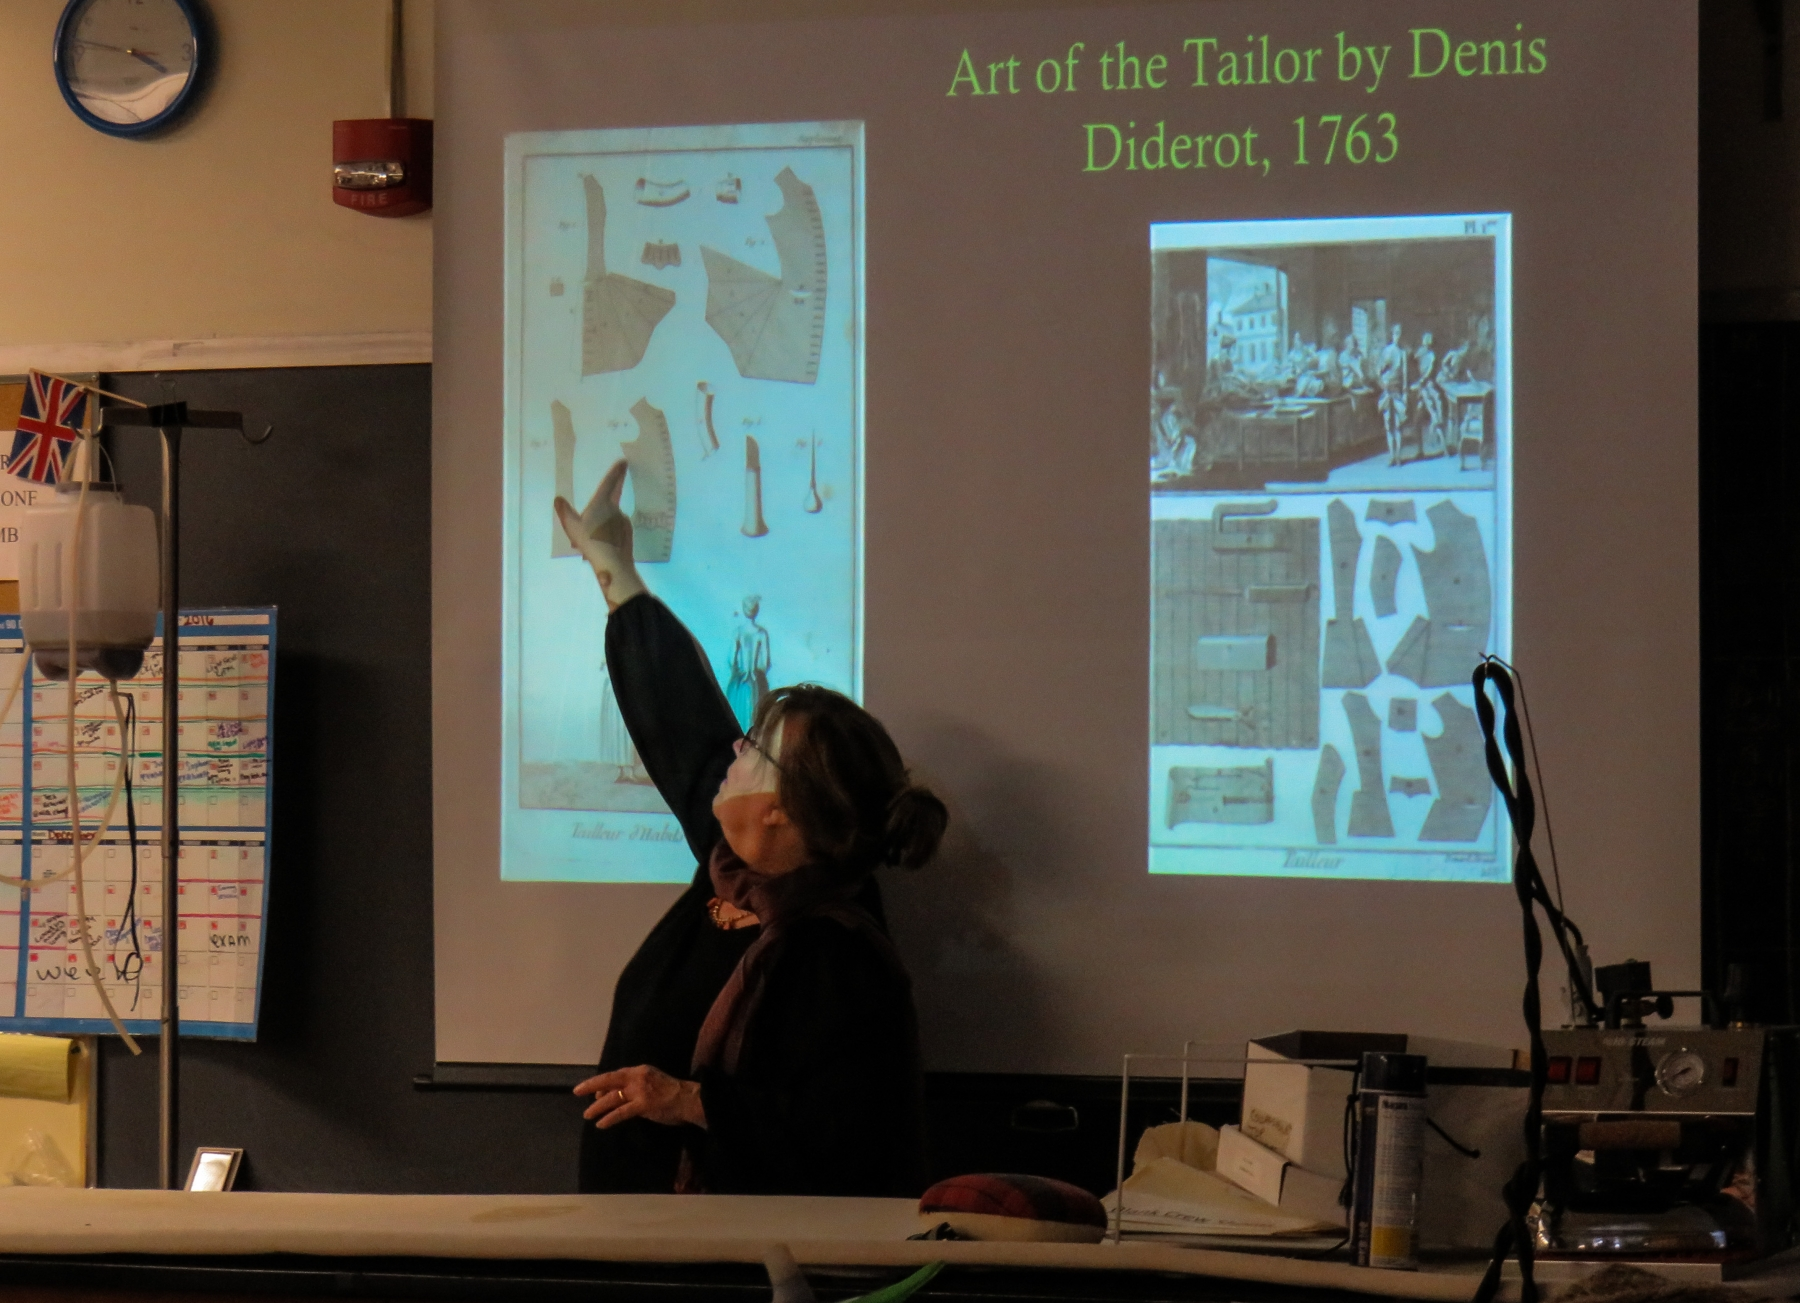 Niagara County Historian, Kate Emerson, presents historic details of the men's 18th century waistcoat to Niagara University students as a contributor to a collaborative project between Old Fort Niagara and the university.